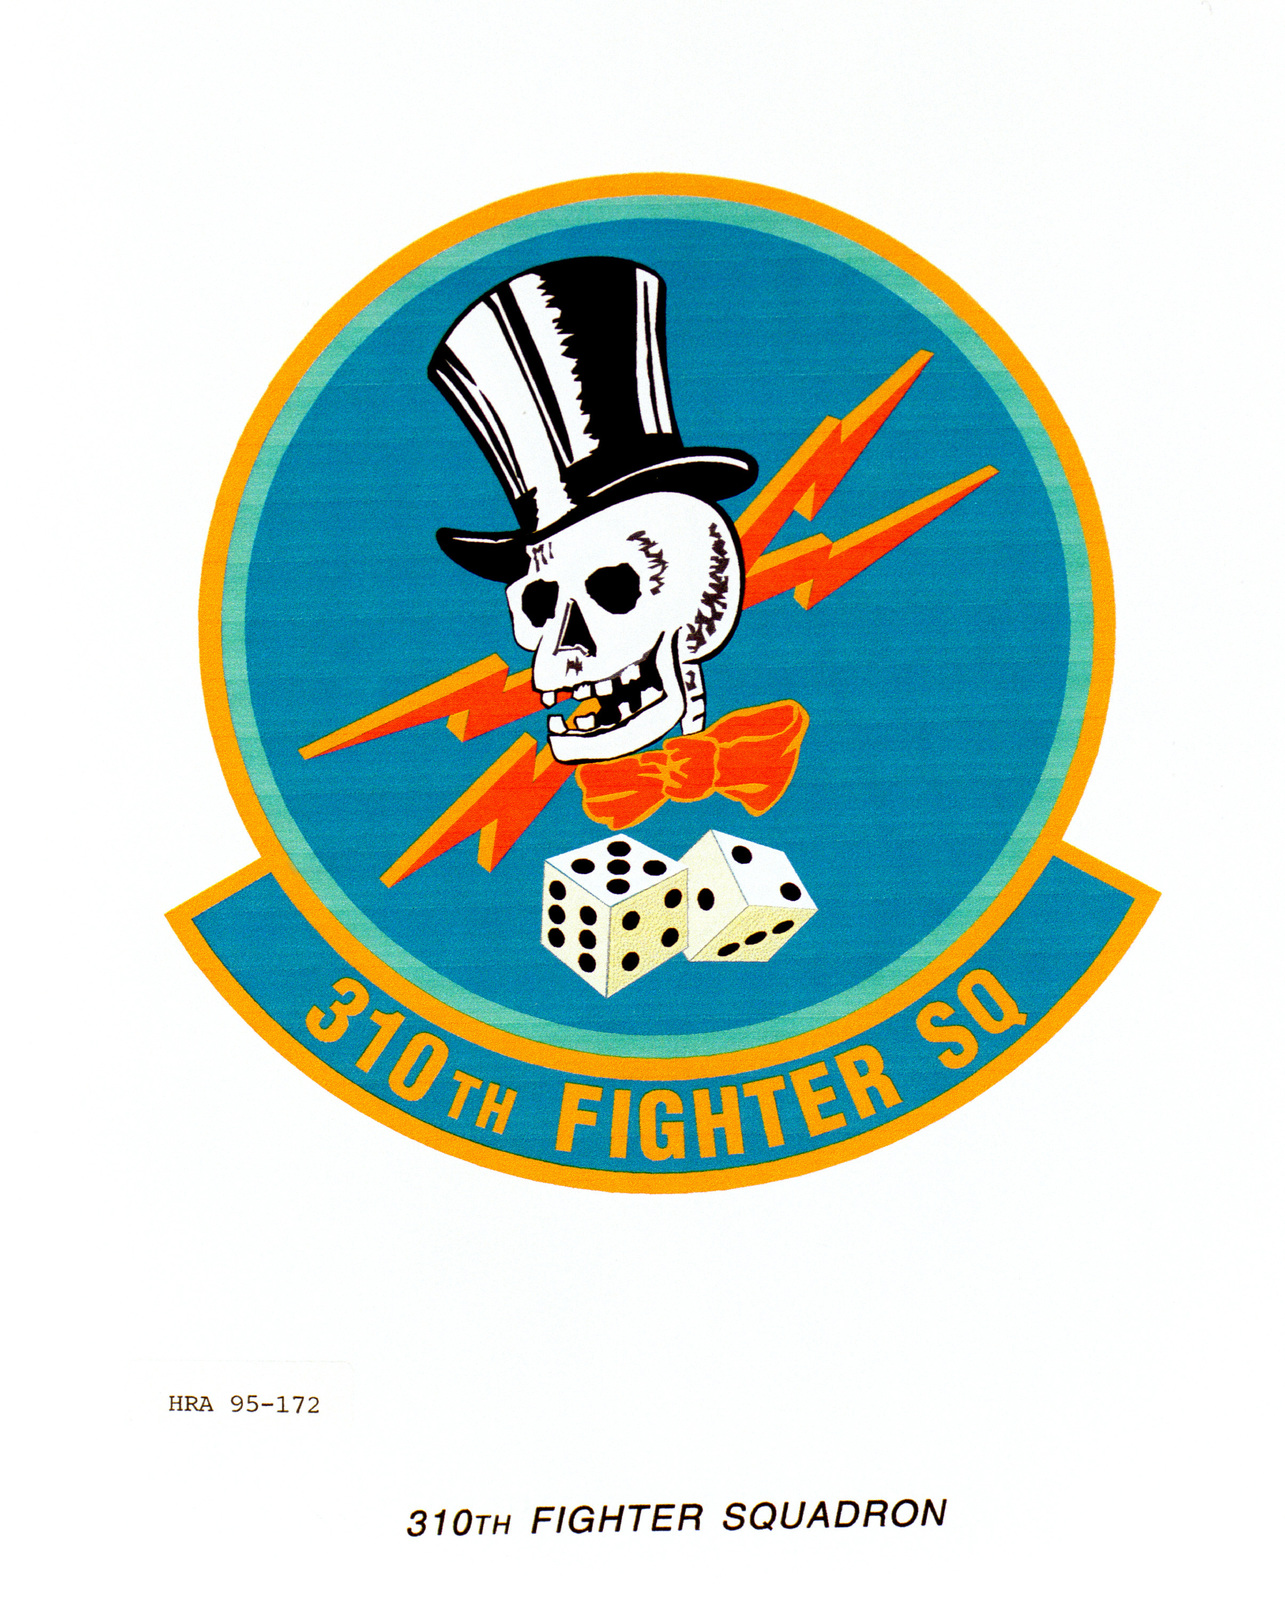 Approved Insignia for the 310th Fighter Squadron. Exact Date Shot Unknown